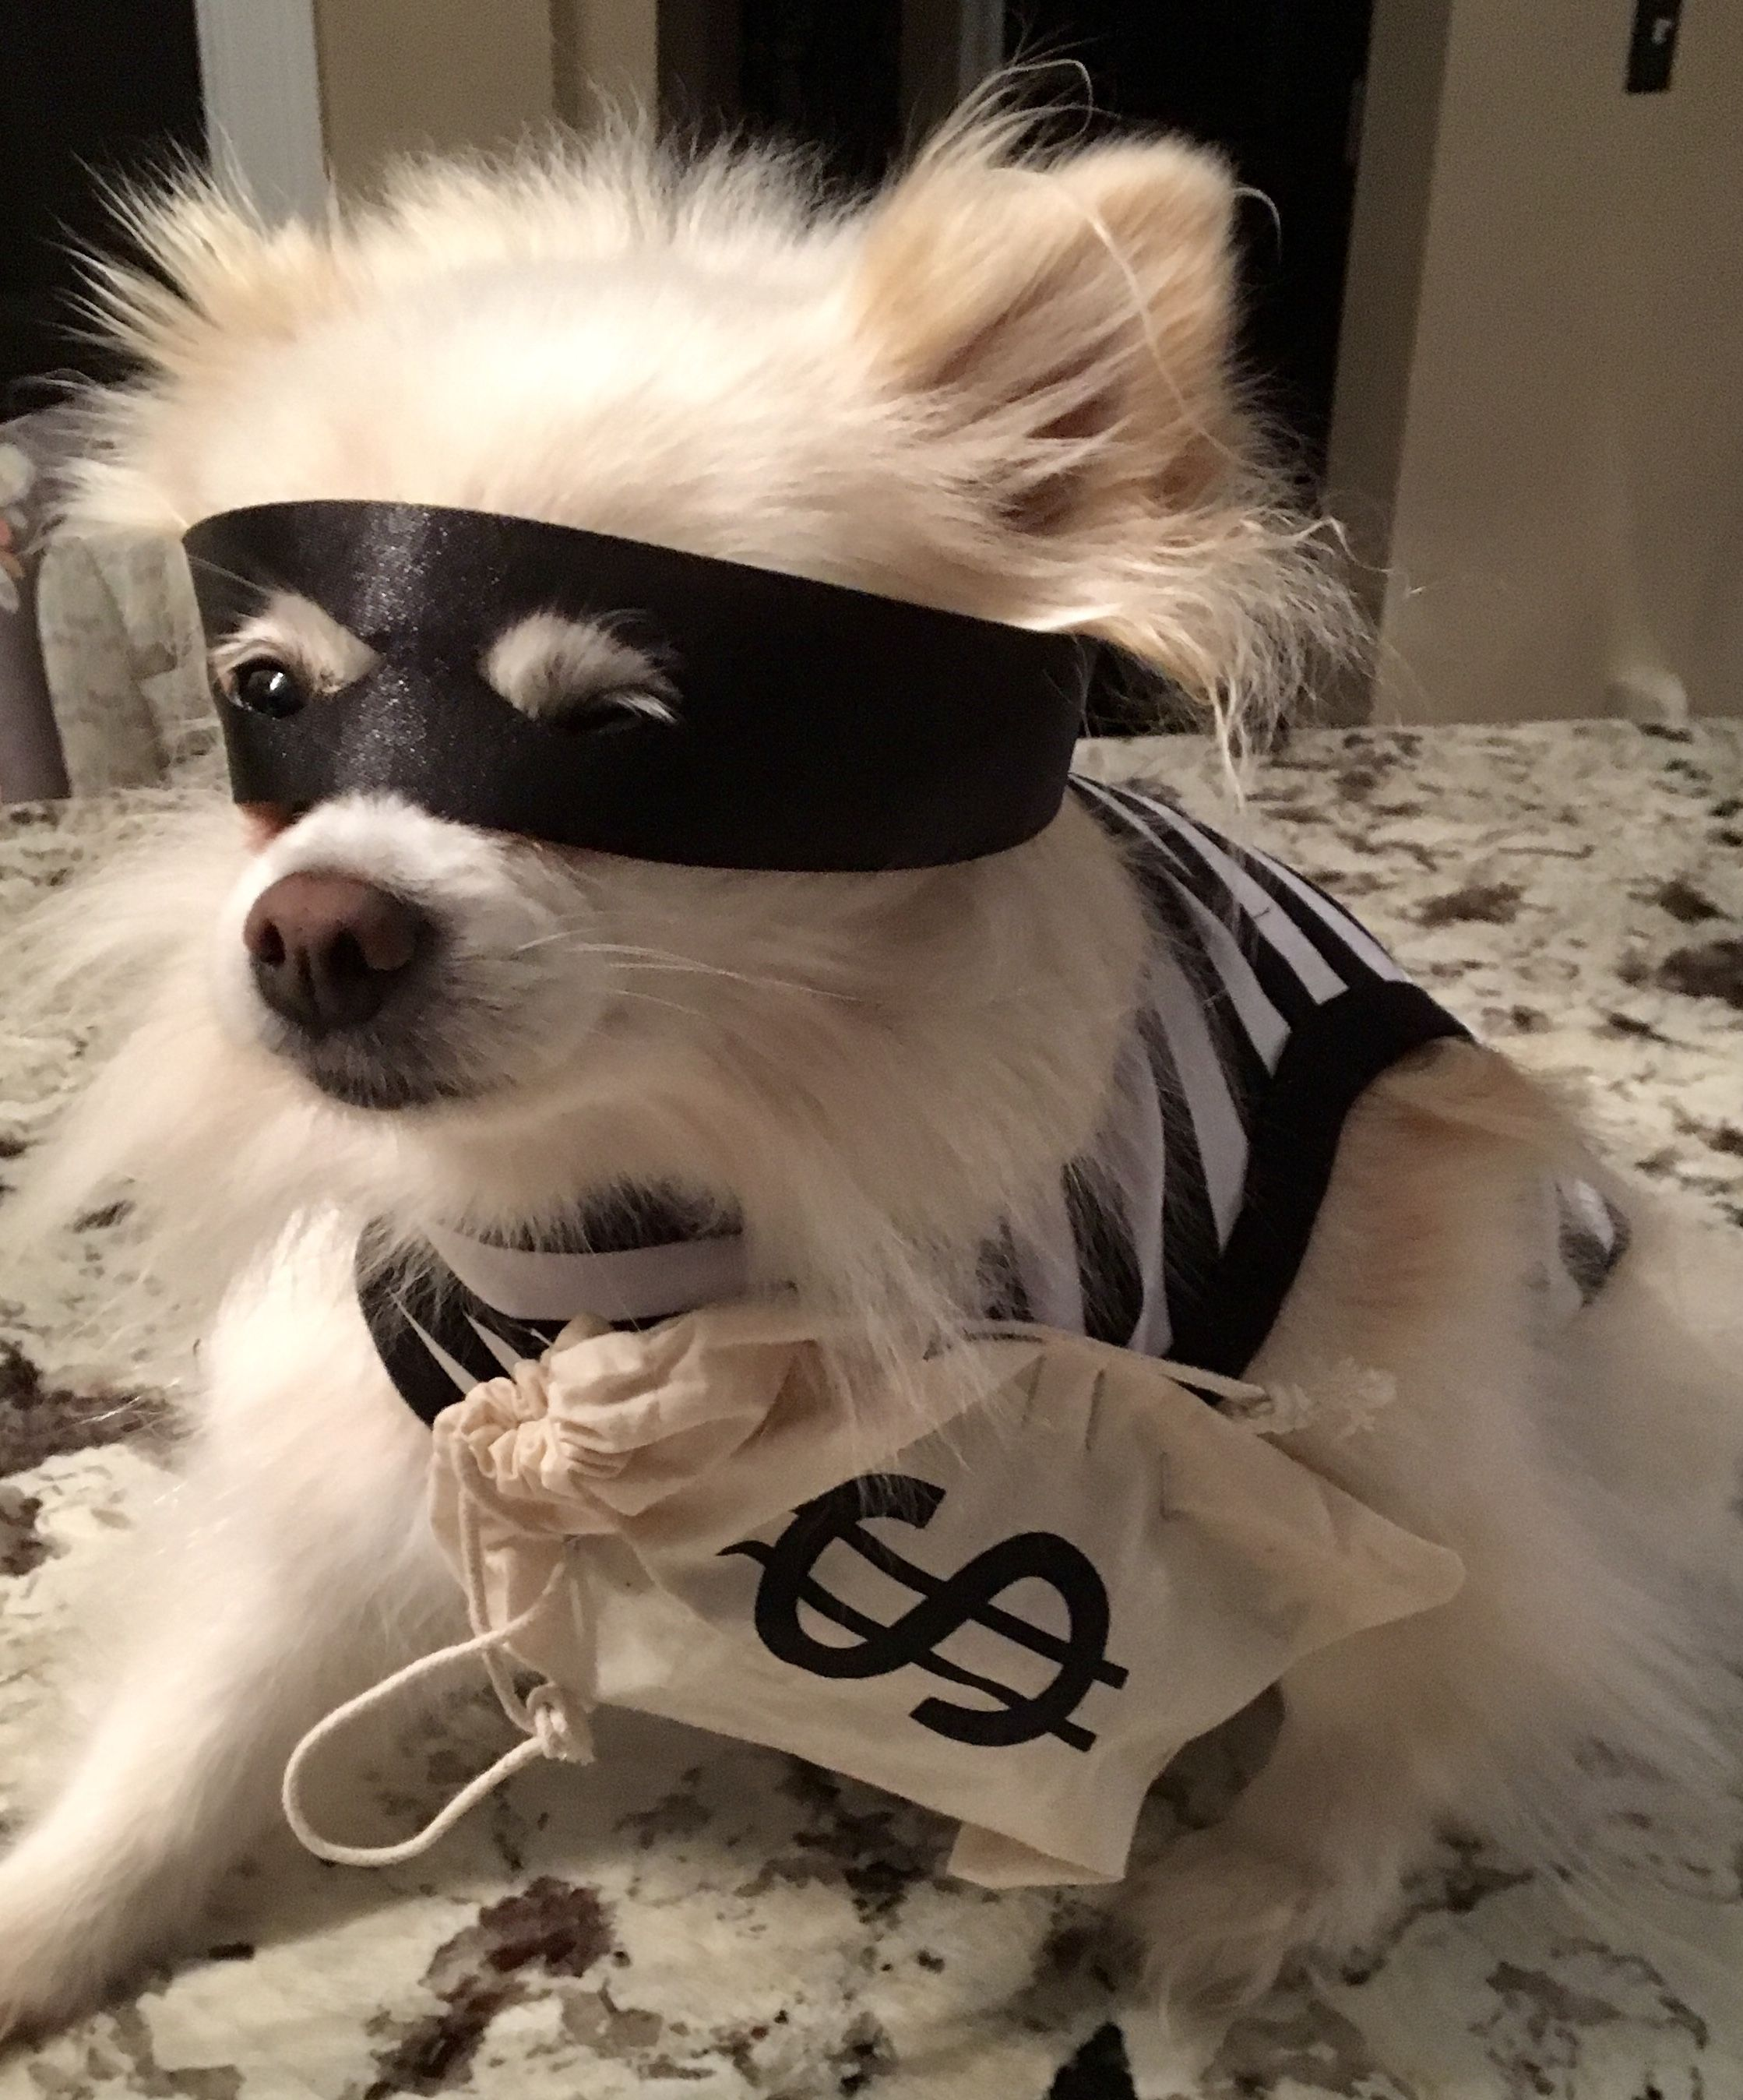 98305ec2204 Dog Halloween costume diy original robber with money and mask ...